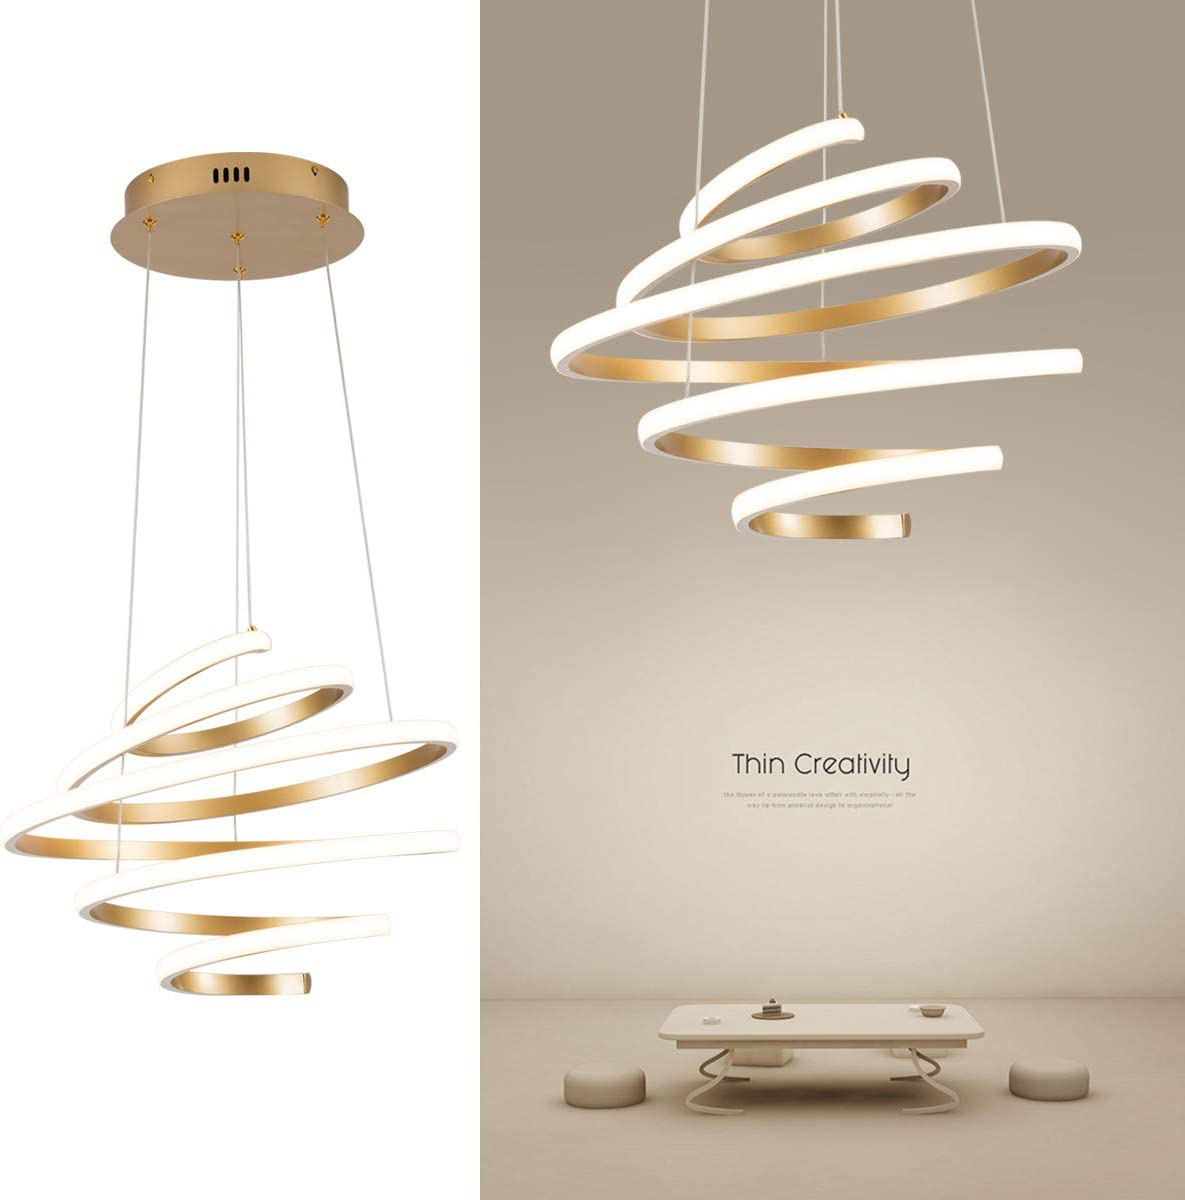 LED Modern Chandelier Not Dimmable Contemporary Pendant Light Creative Spiral Rings LED Chandelier Adjustable Pendant Lighting Fixtures for Living Room Bedroom Dining Room Hallway Kitchen, UL Listed